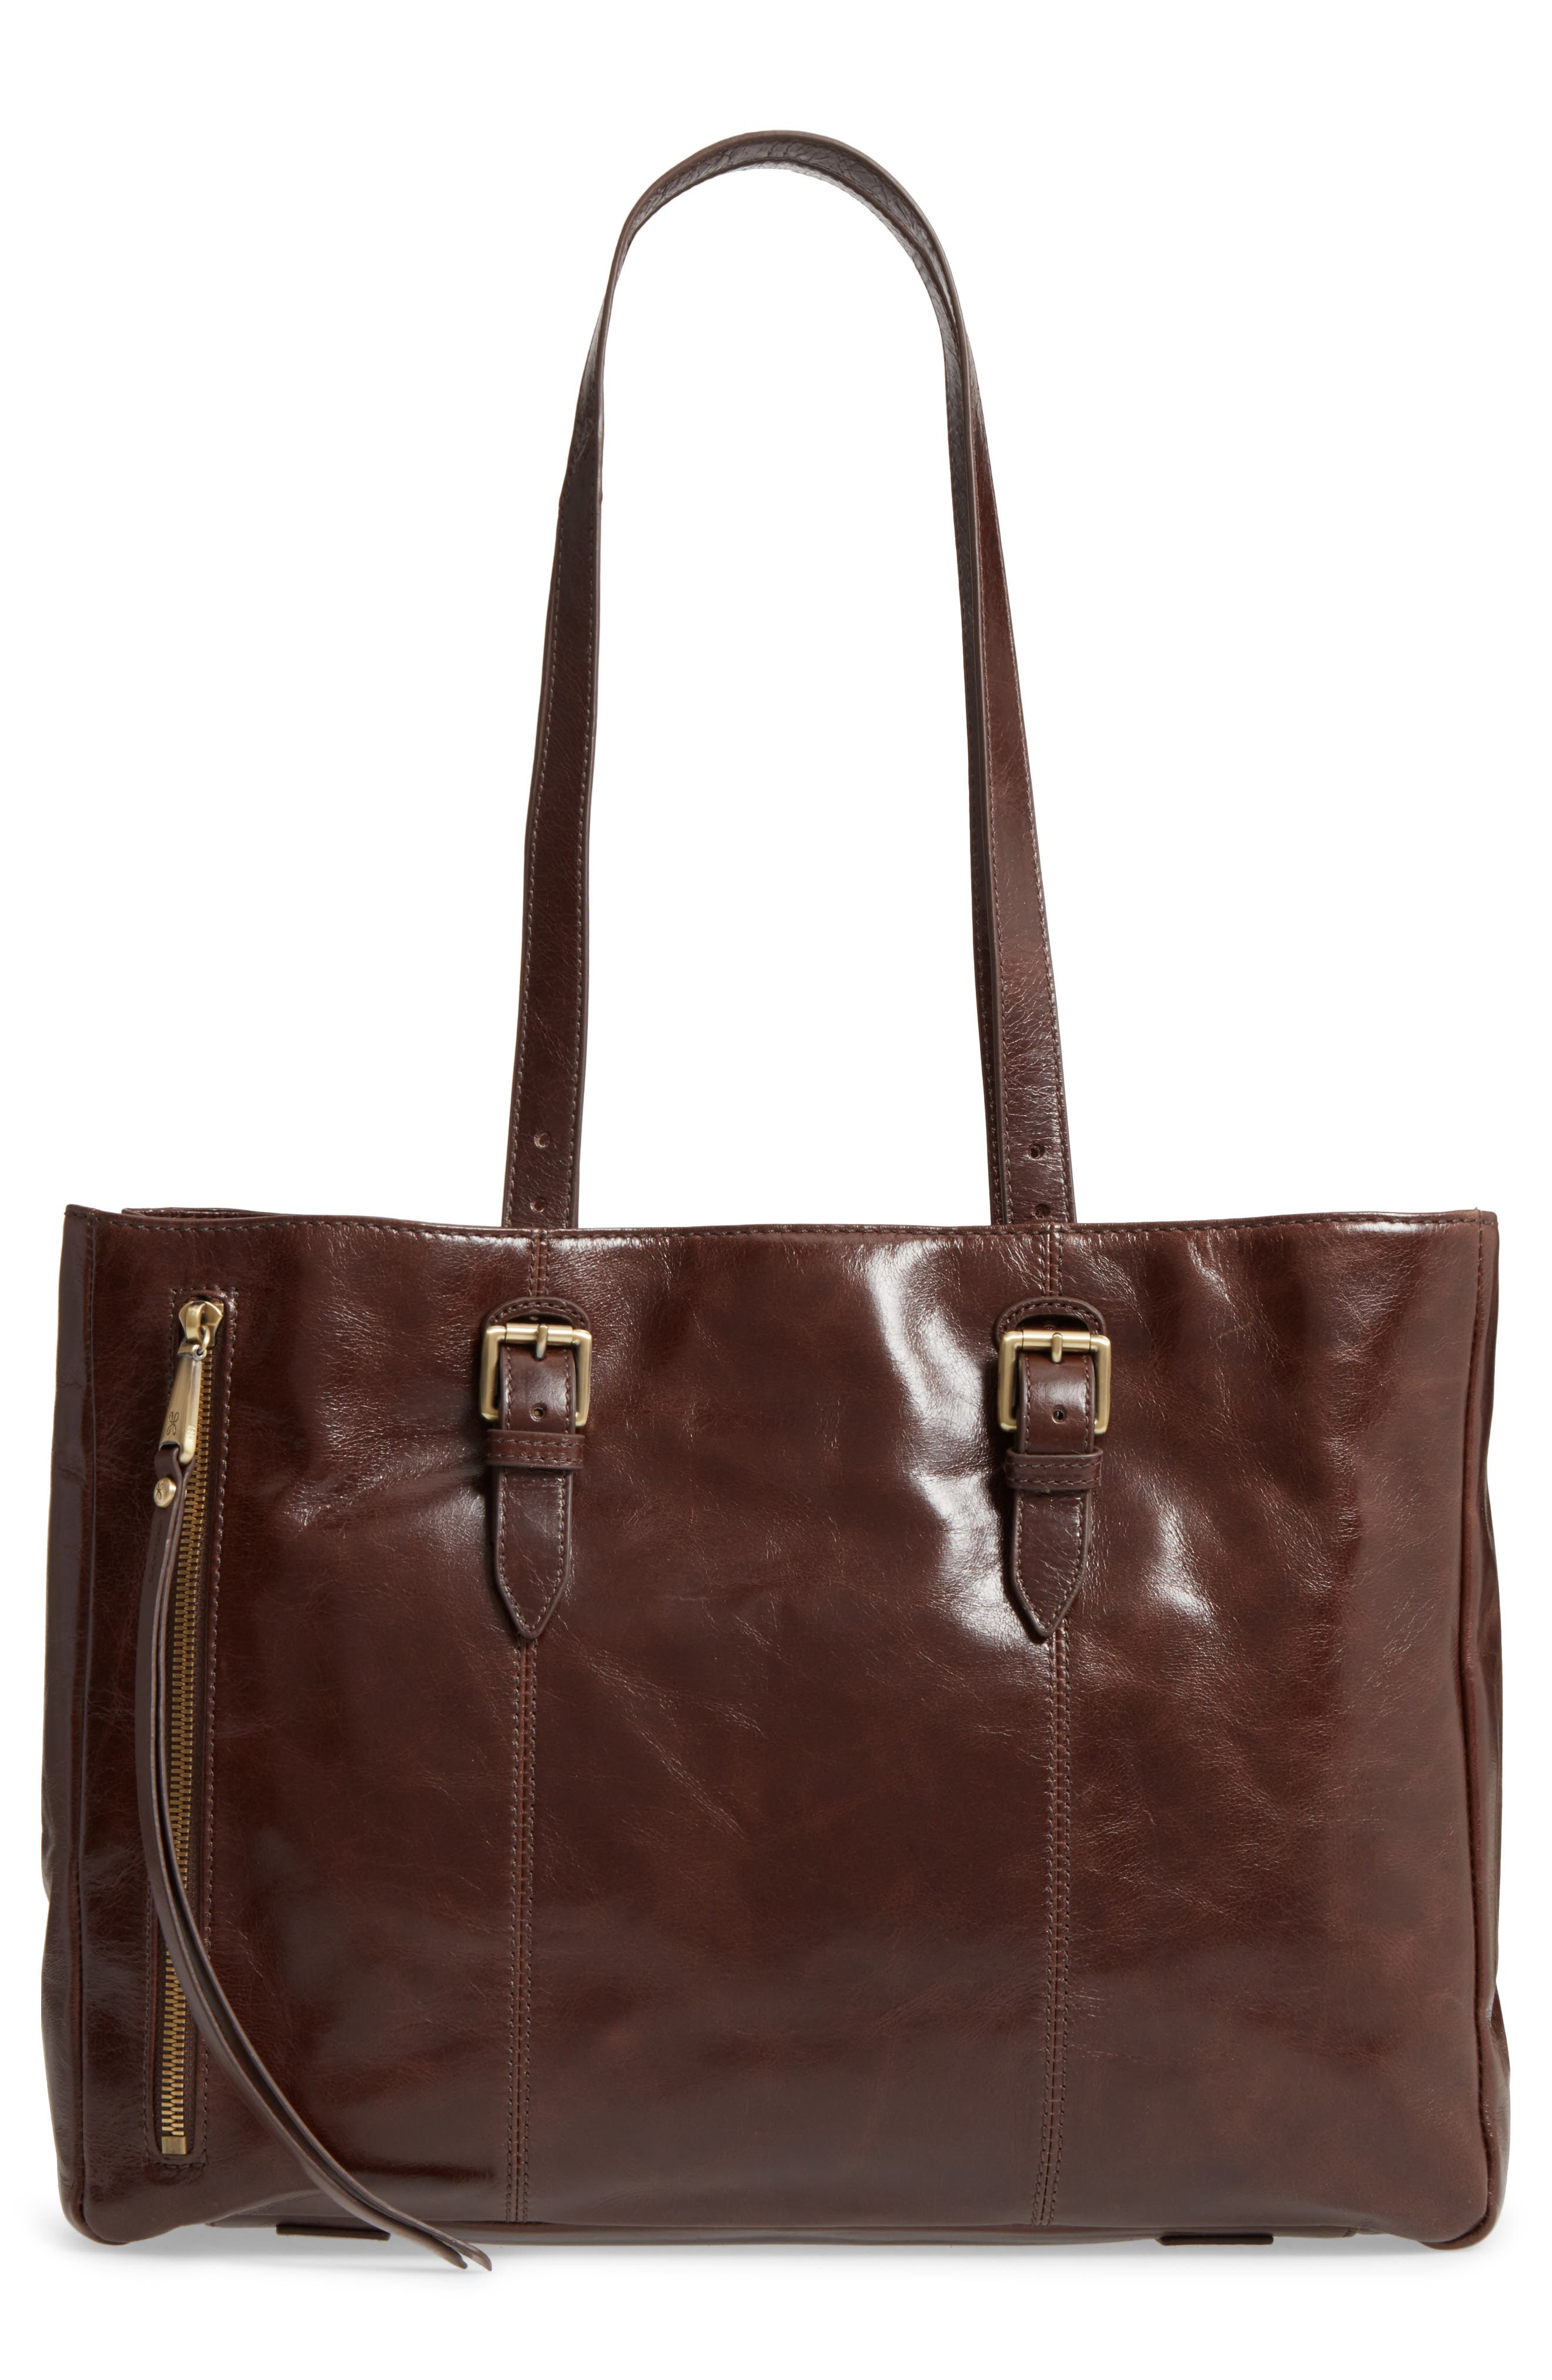 Cabot Calfskin Leather Tote,                             Main thumbnail 1, color,                             Espresso